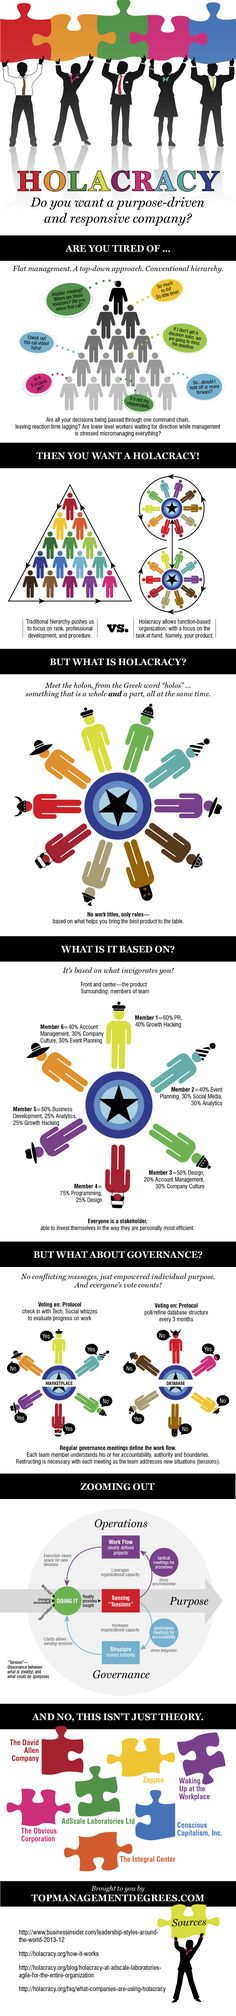 Holacracy: Do You Want a Purpose Driven and Responsive Company? [Infographic]